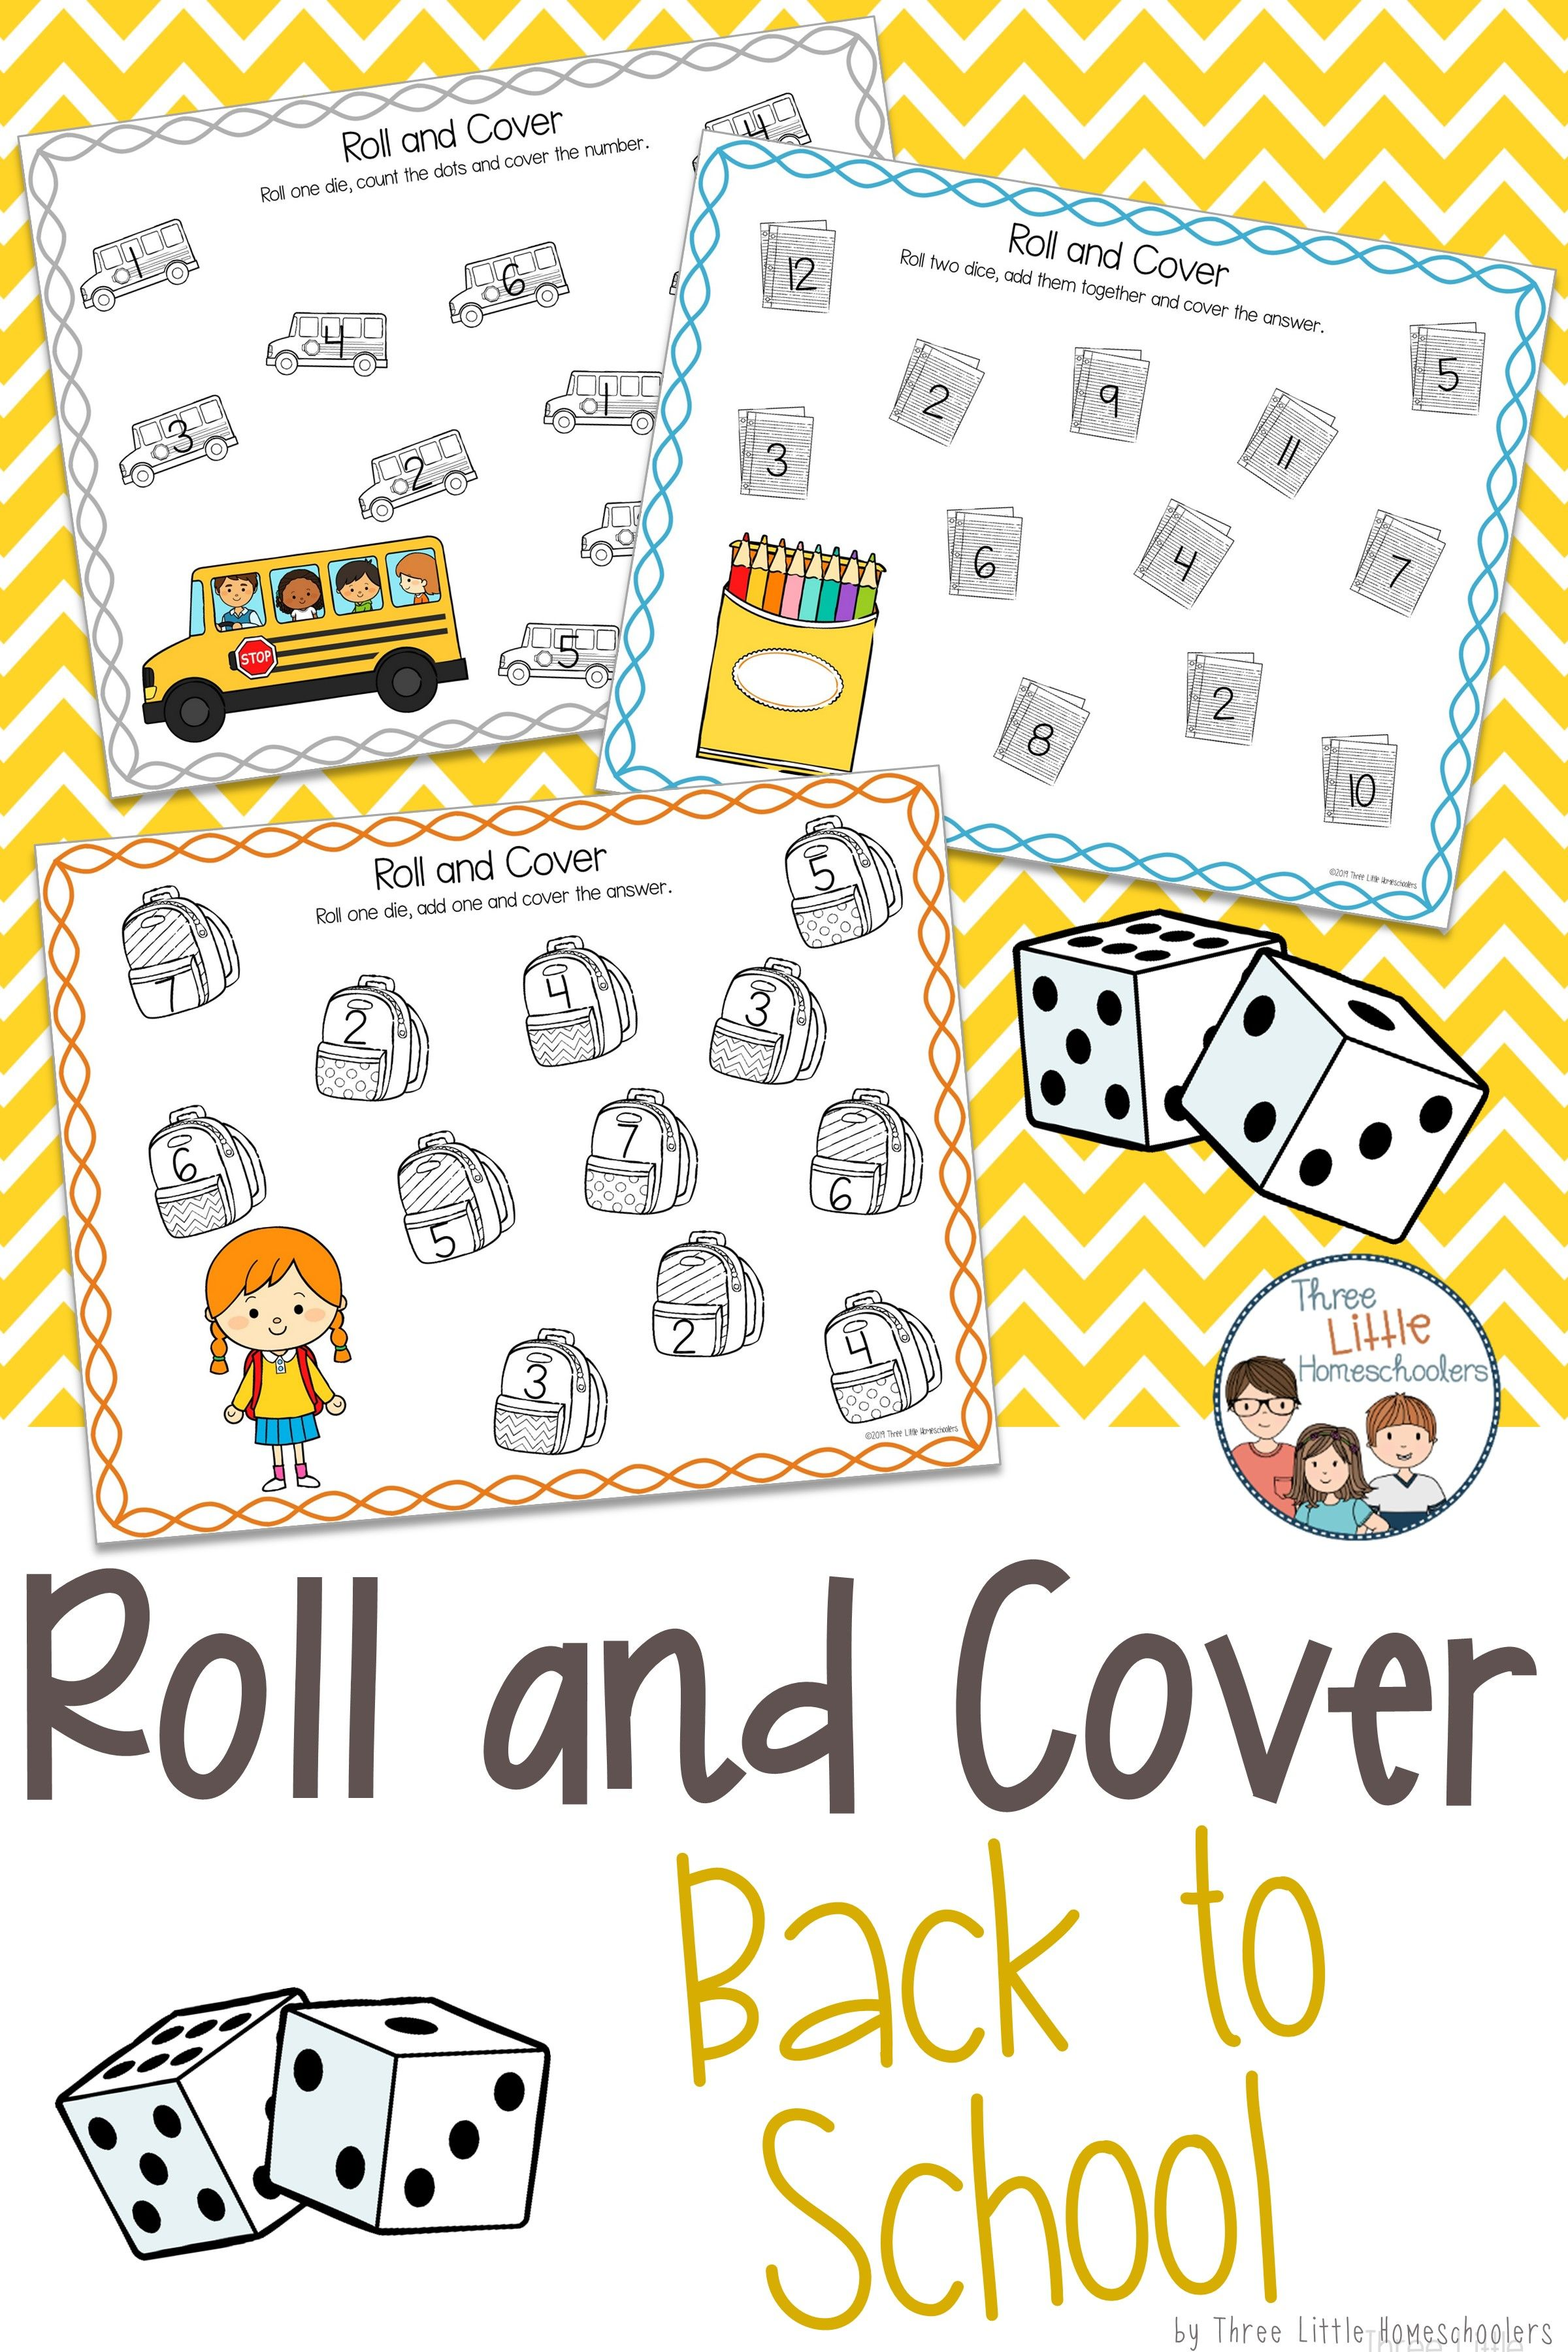 Roll and Cover.